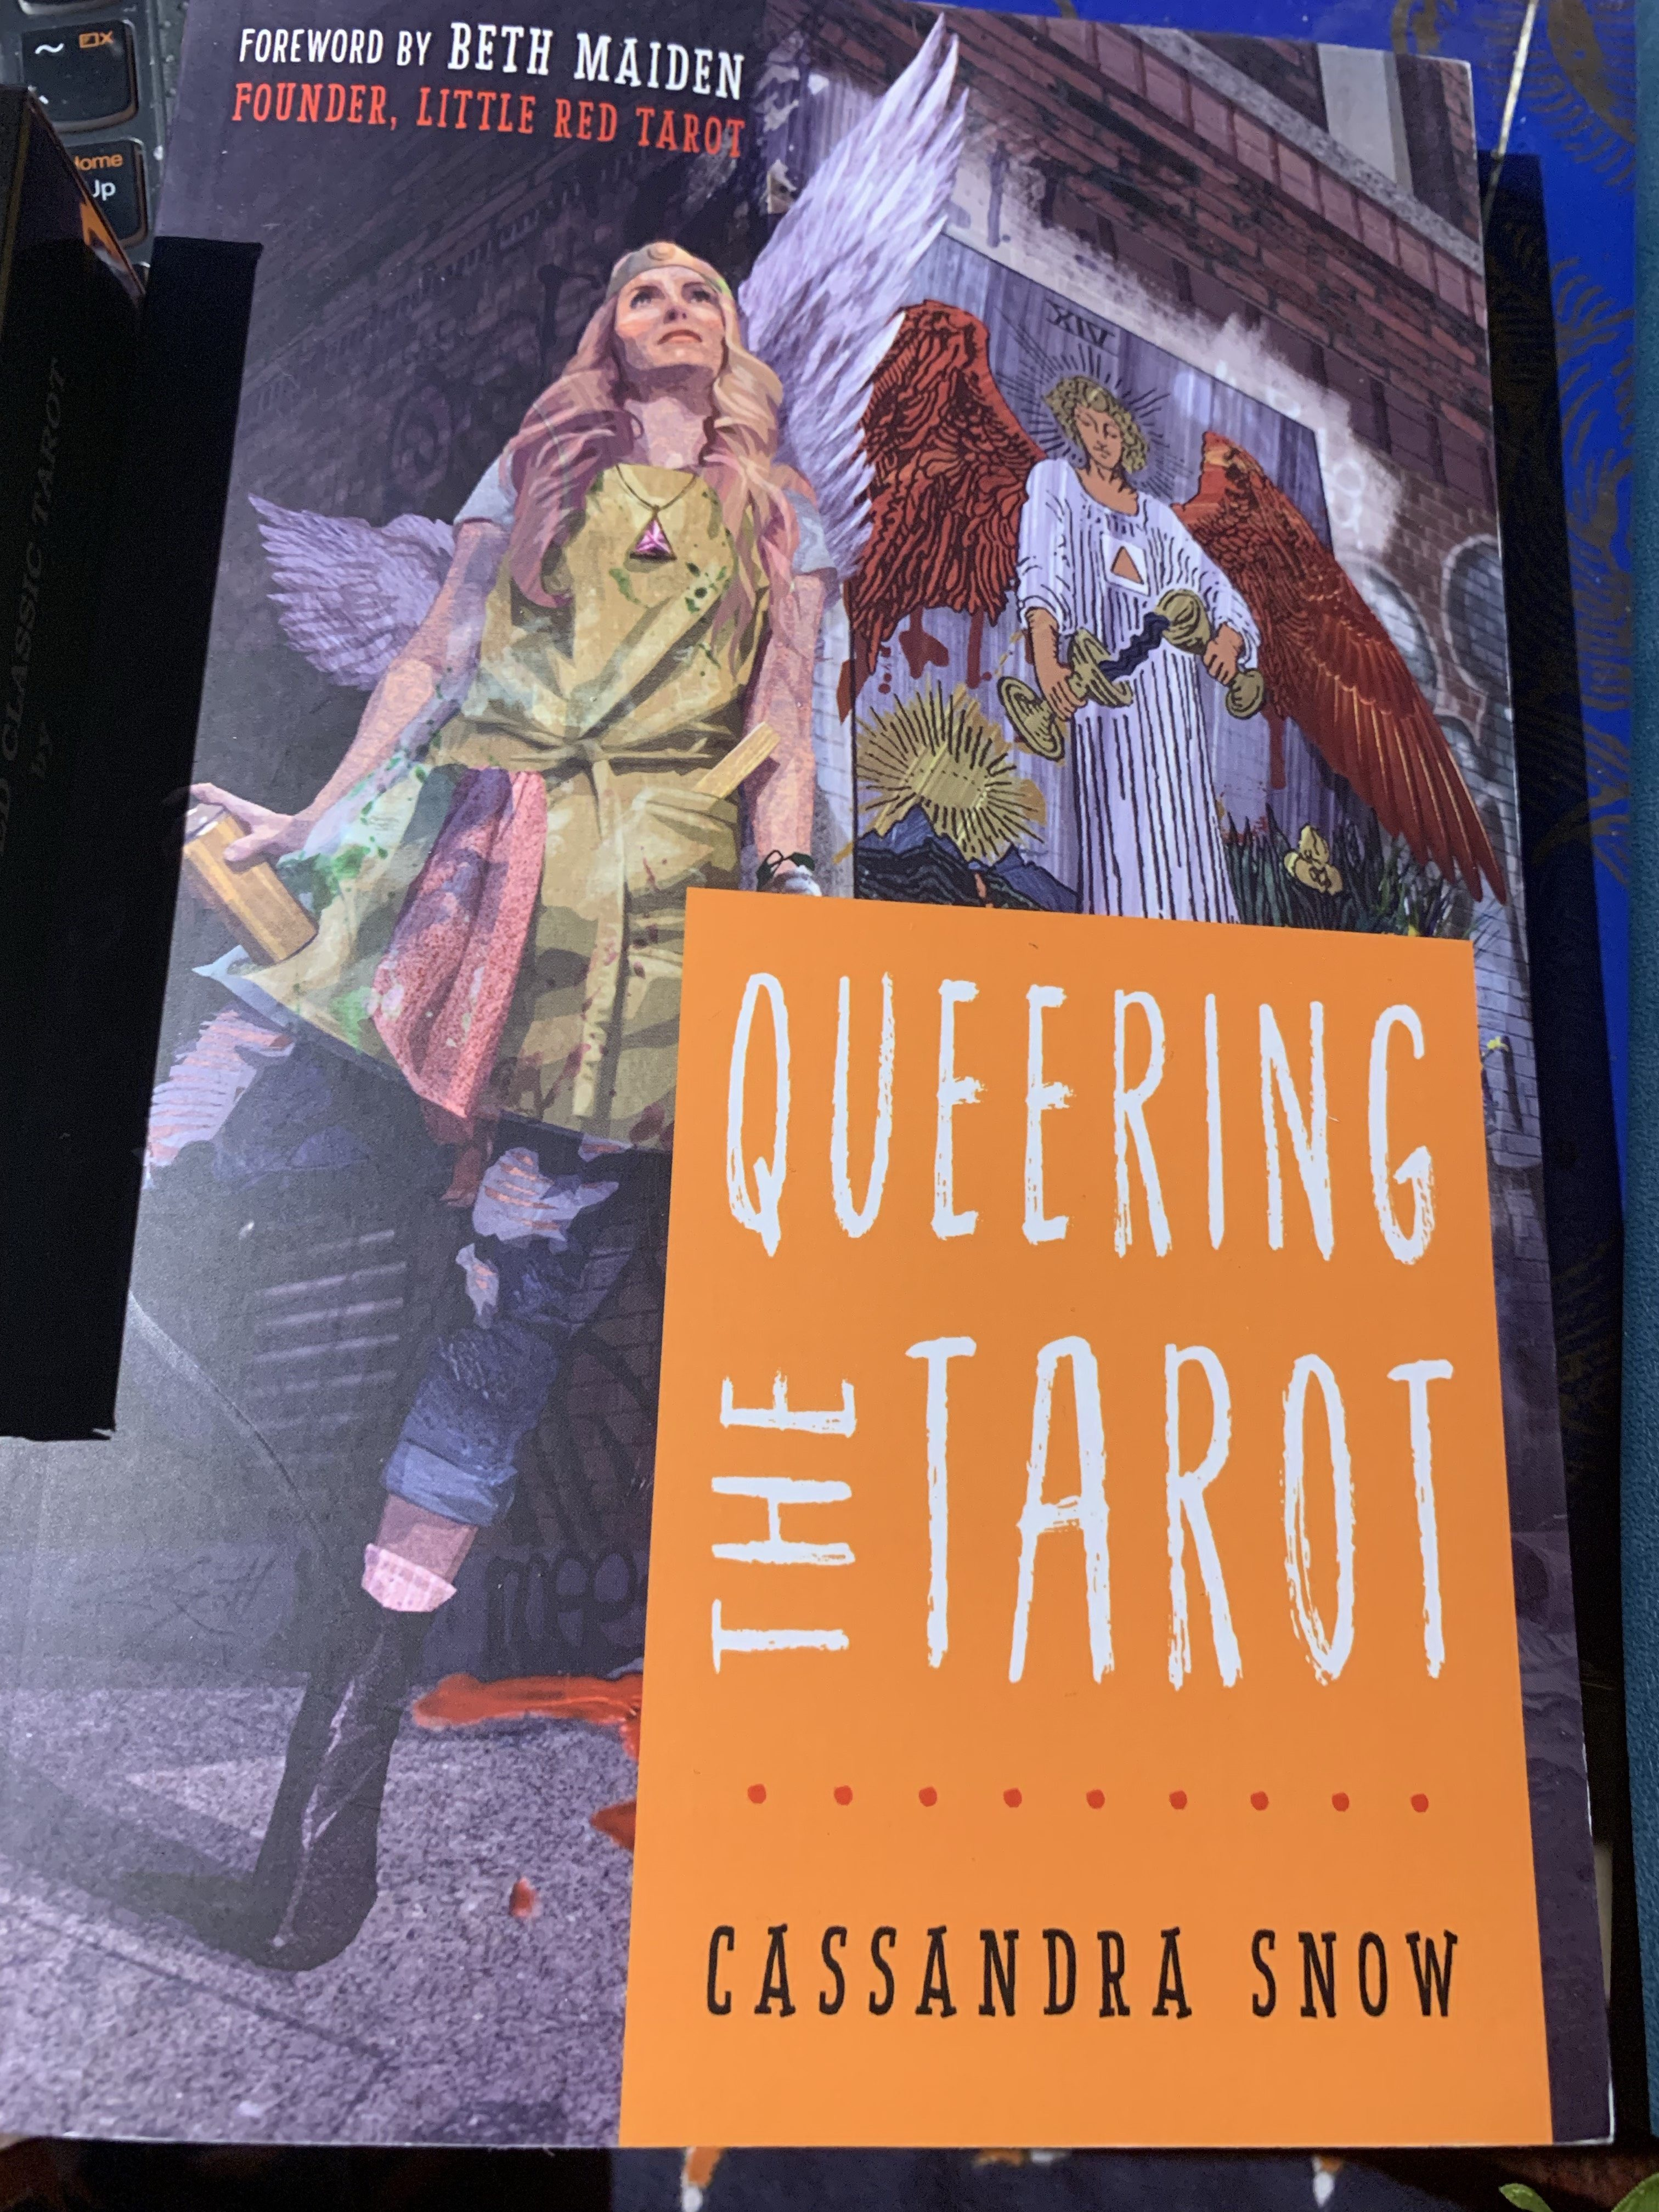 Queering the Tarot by Cassandra Snow | Book Review